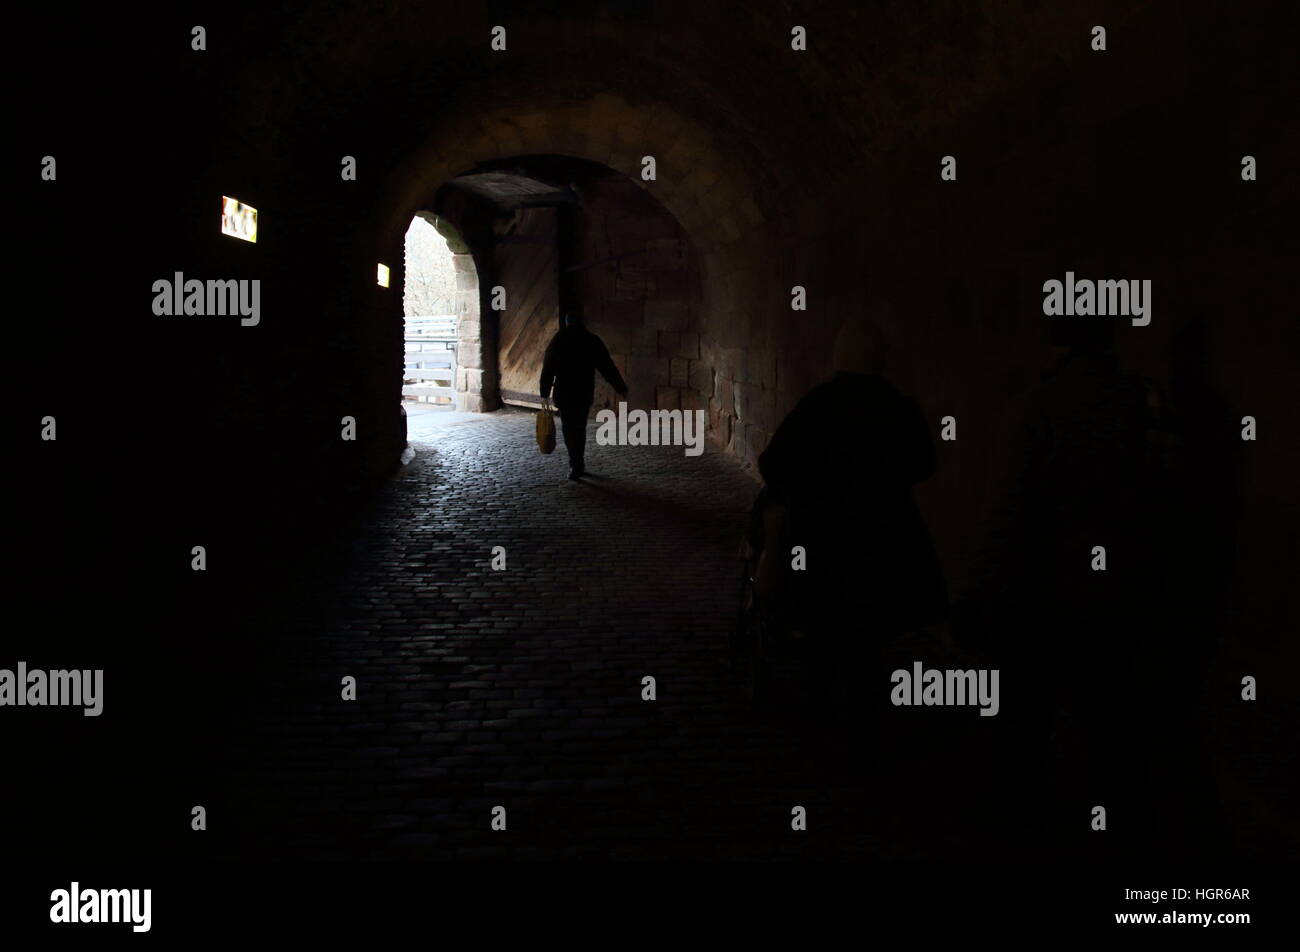 Shadowy figures in a dark tunnel - Stock Image